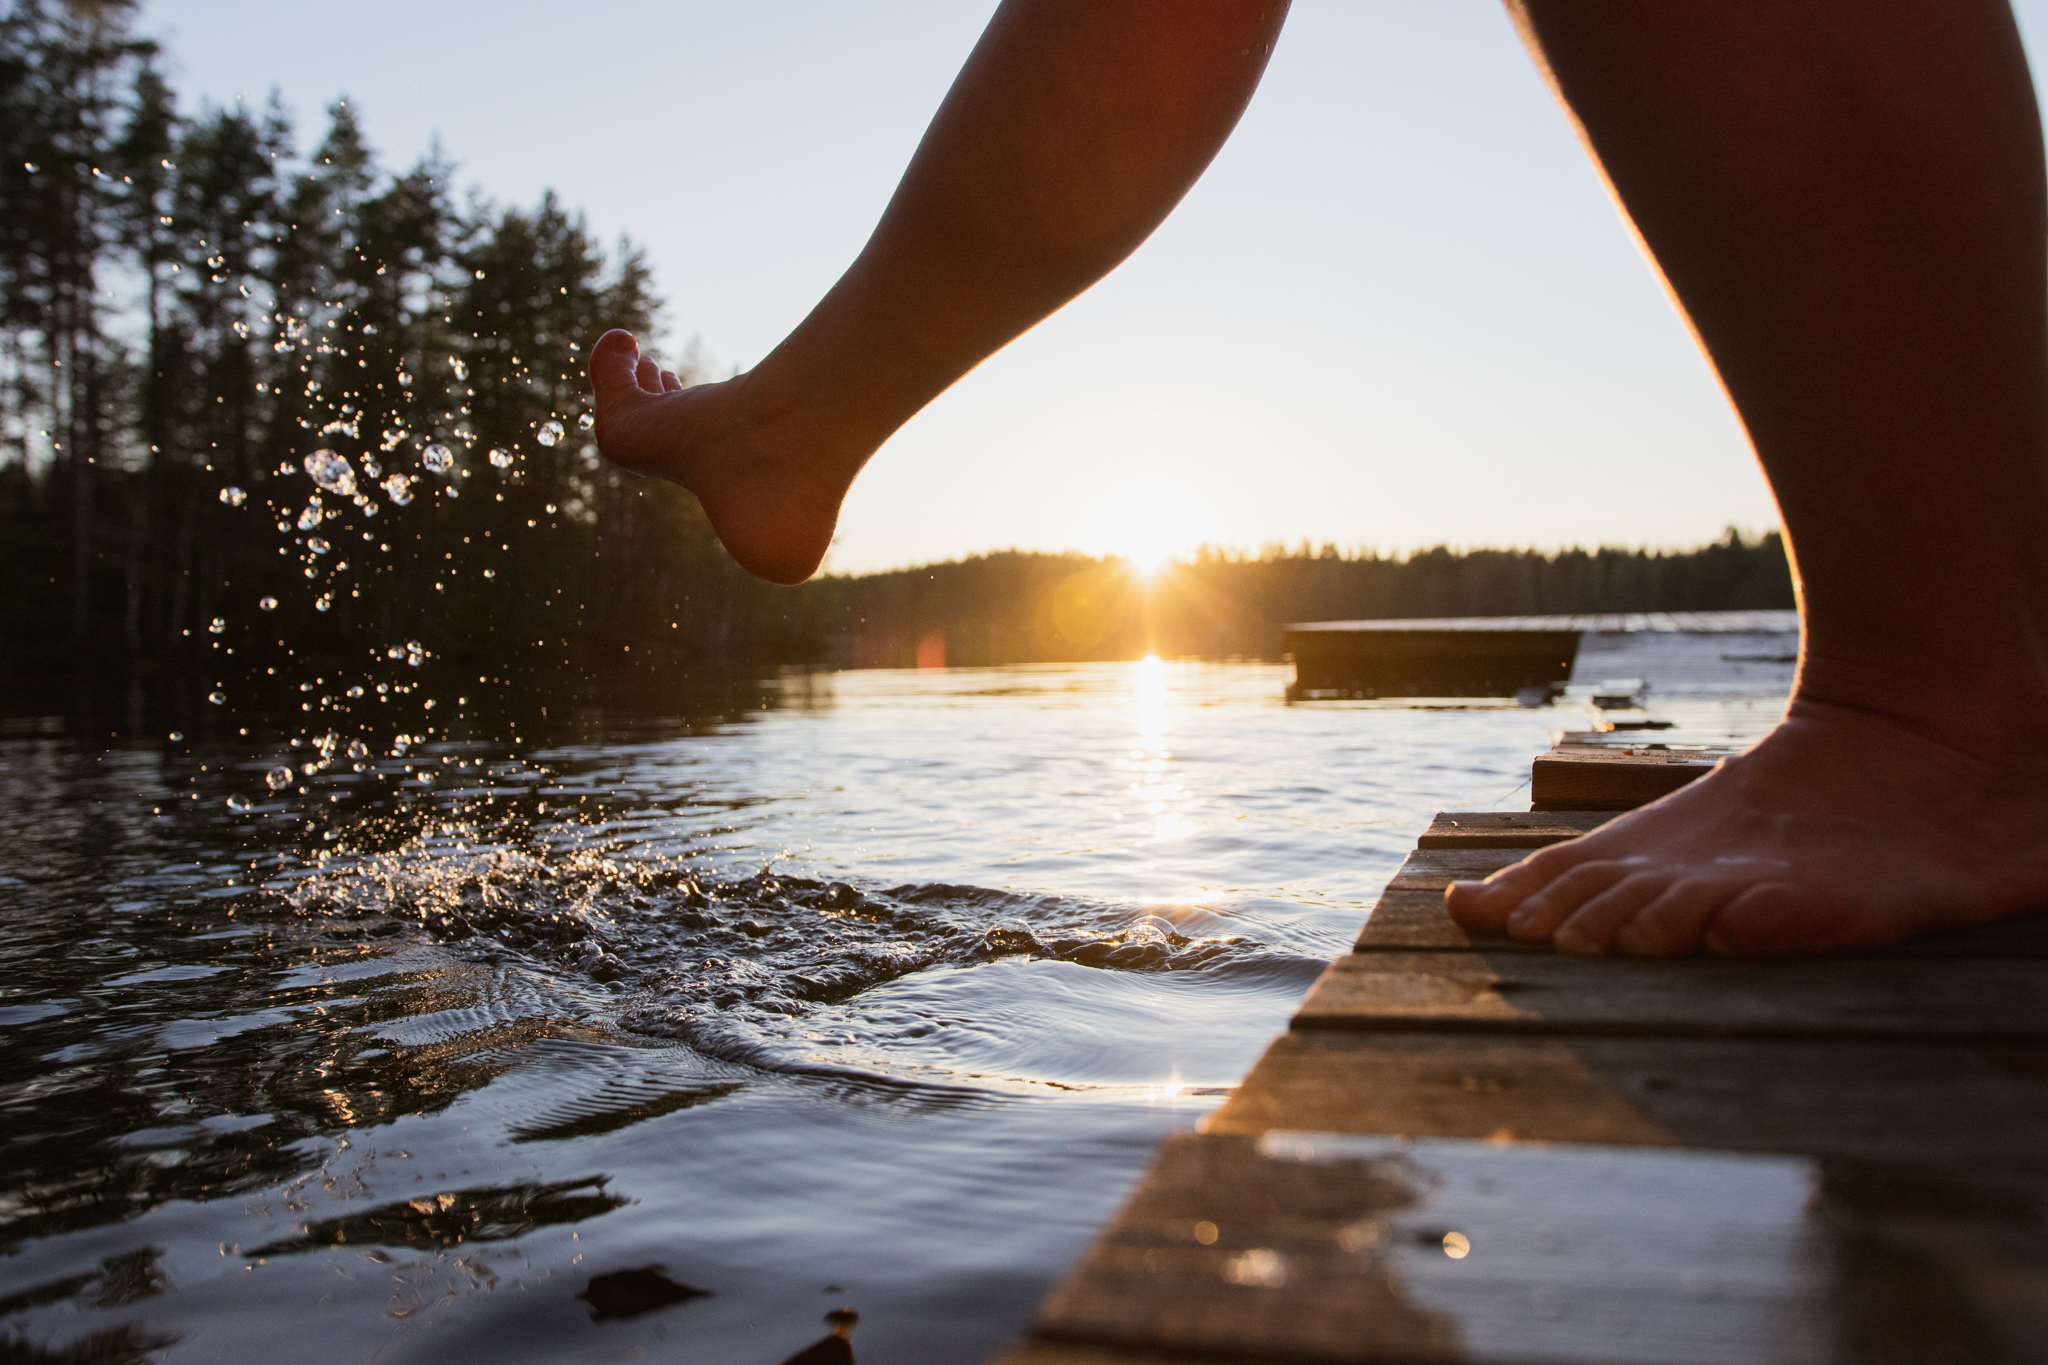 Finnish summer ways to connect with nature and yourself by looking at the sunset by the water